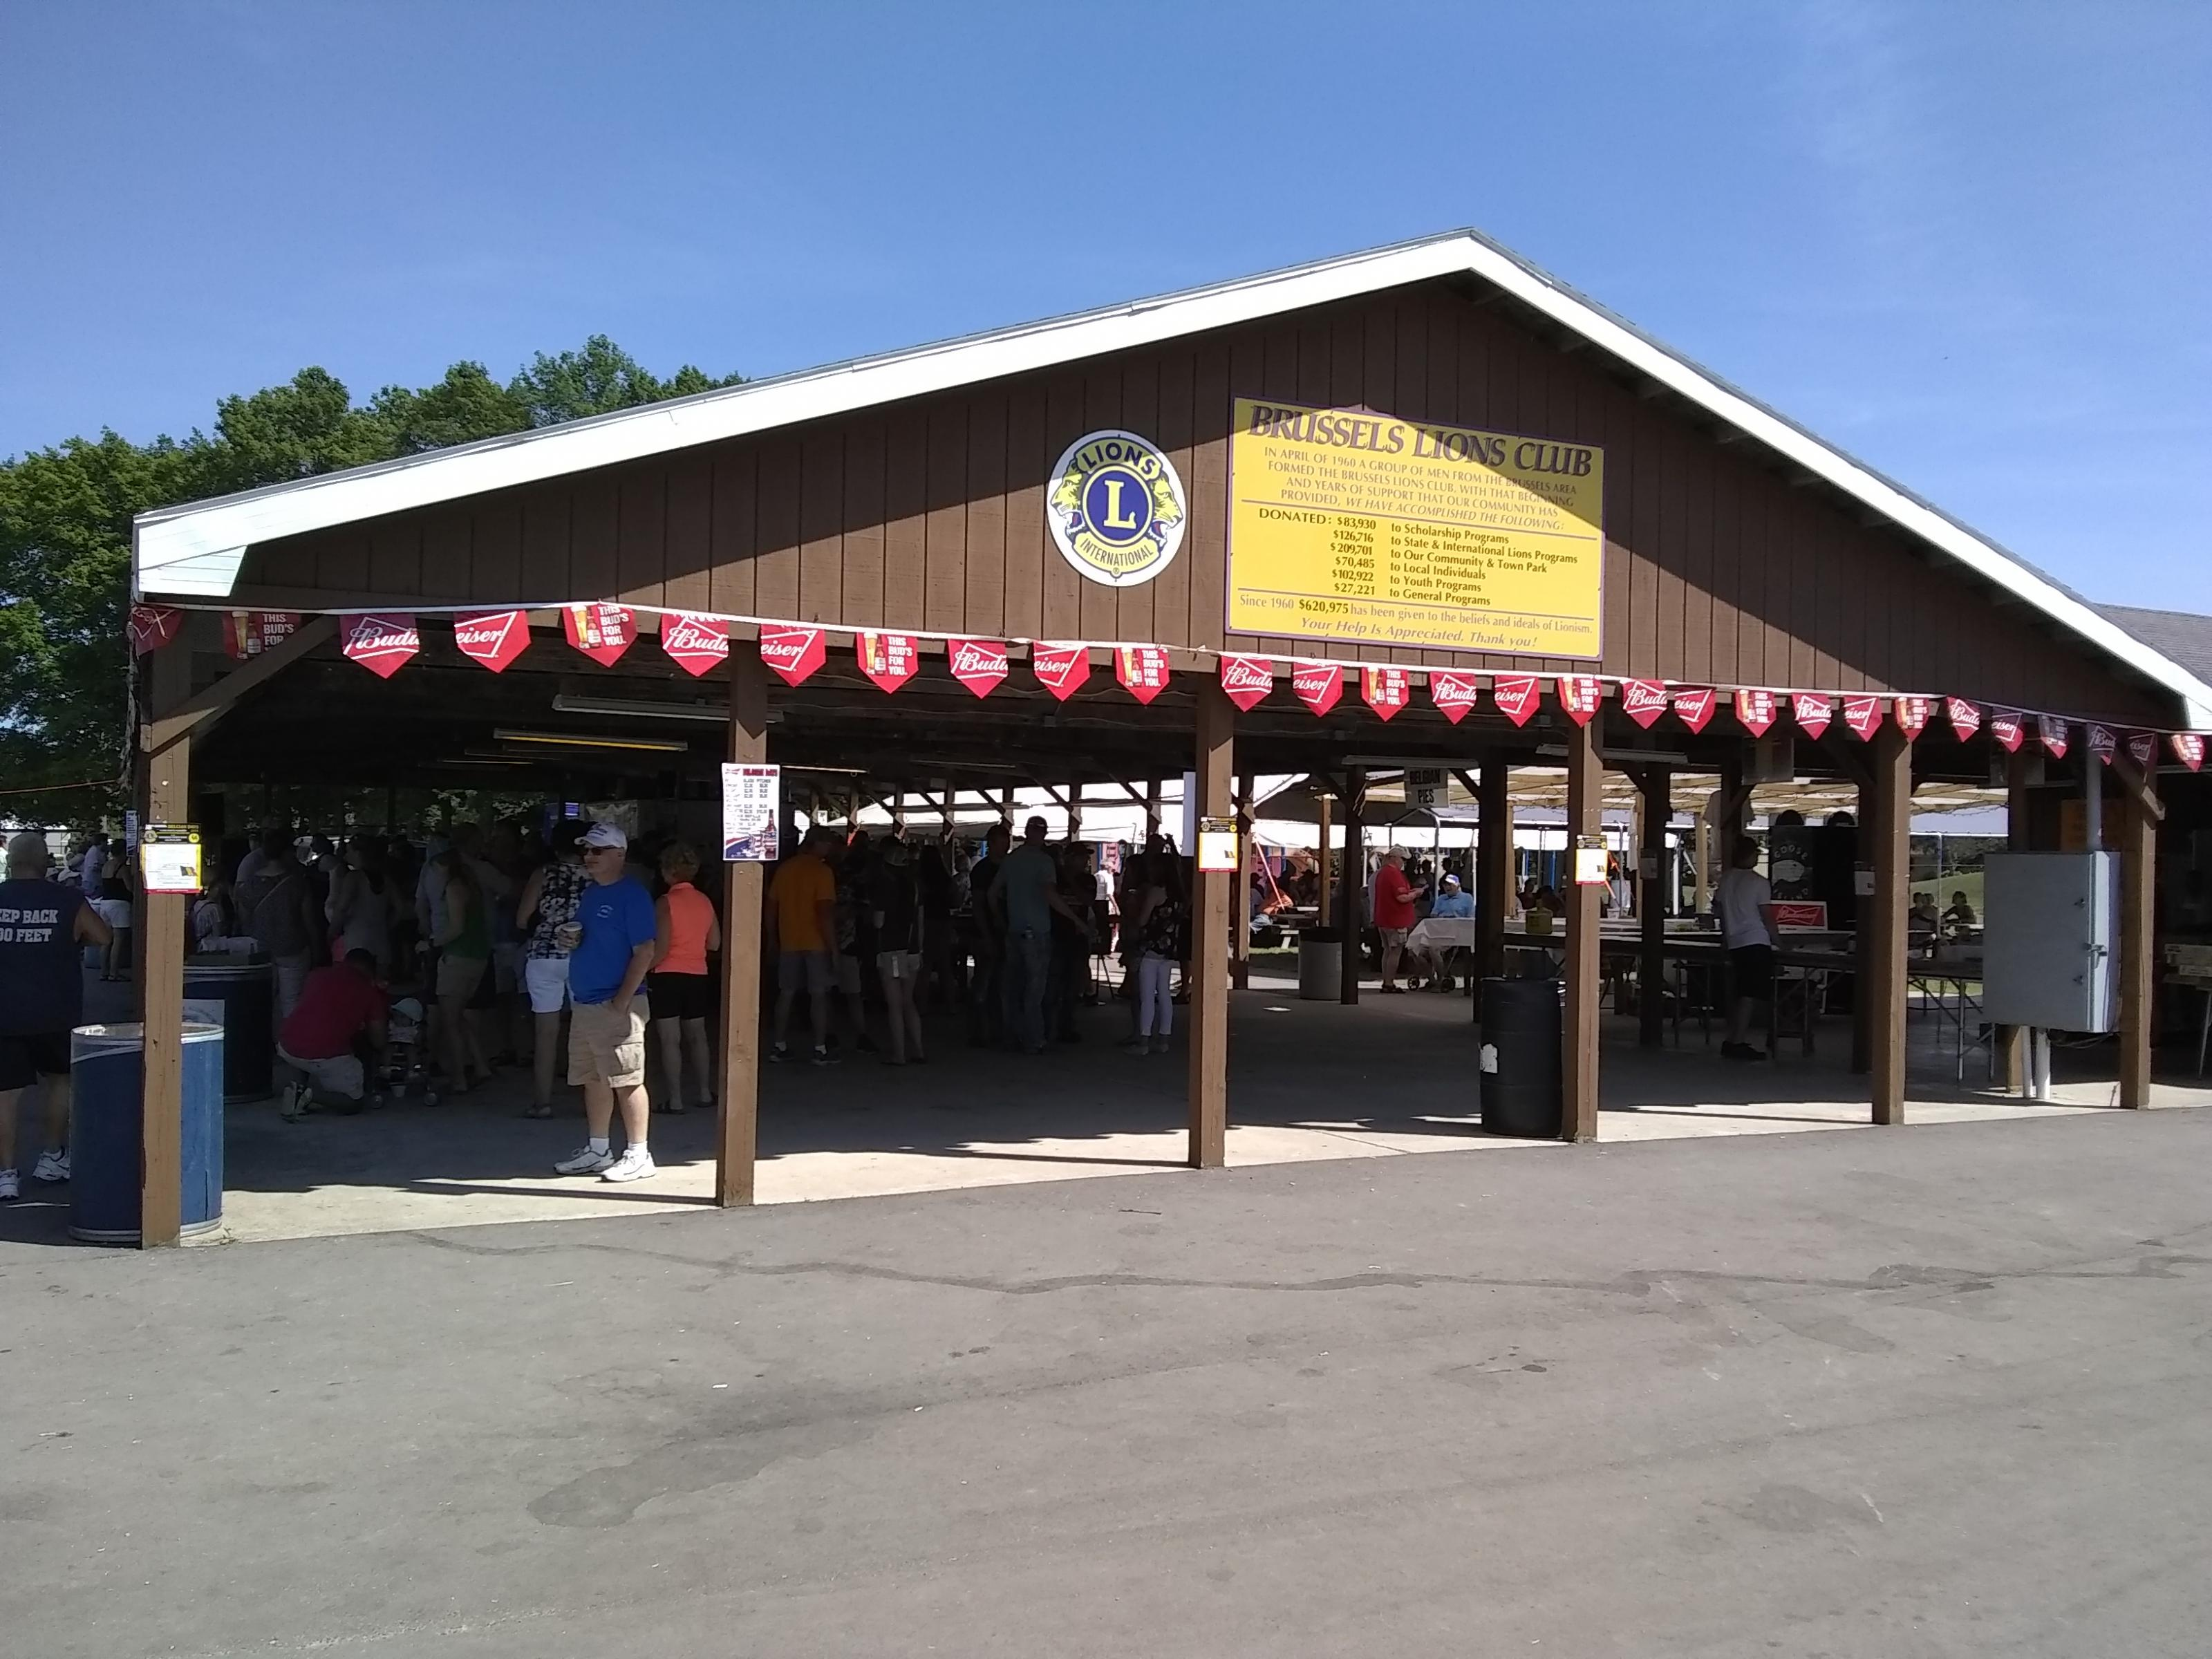 Food and fun underneath the Brussels Lions Club shelter at Belgian Days